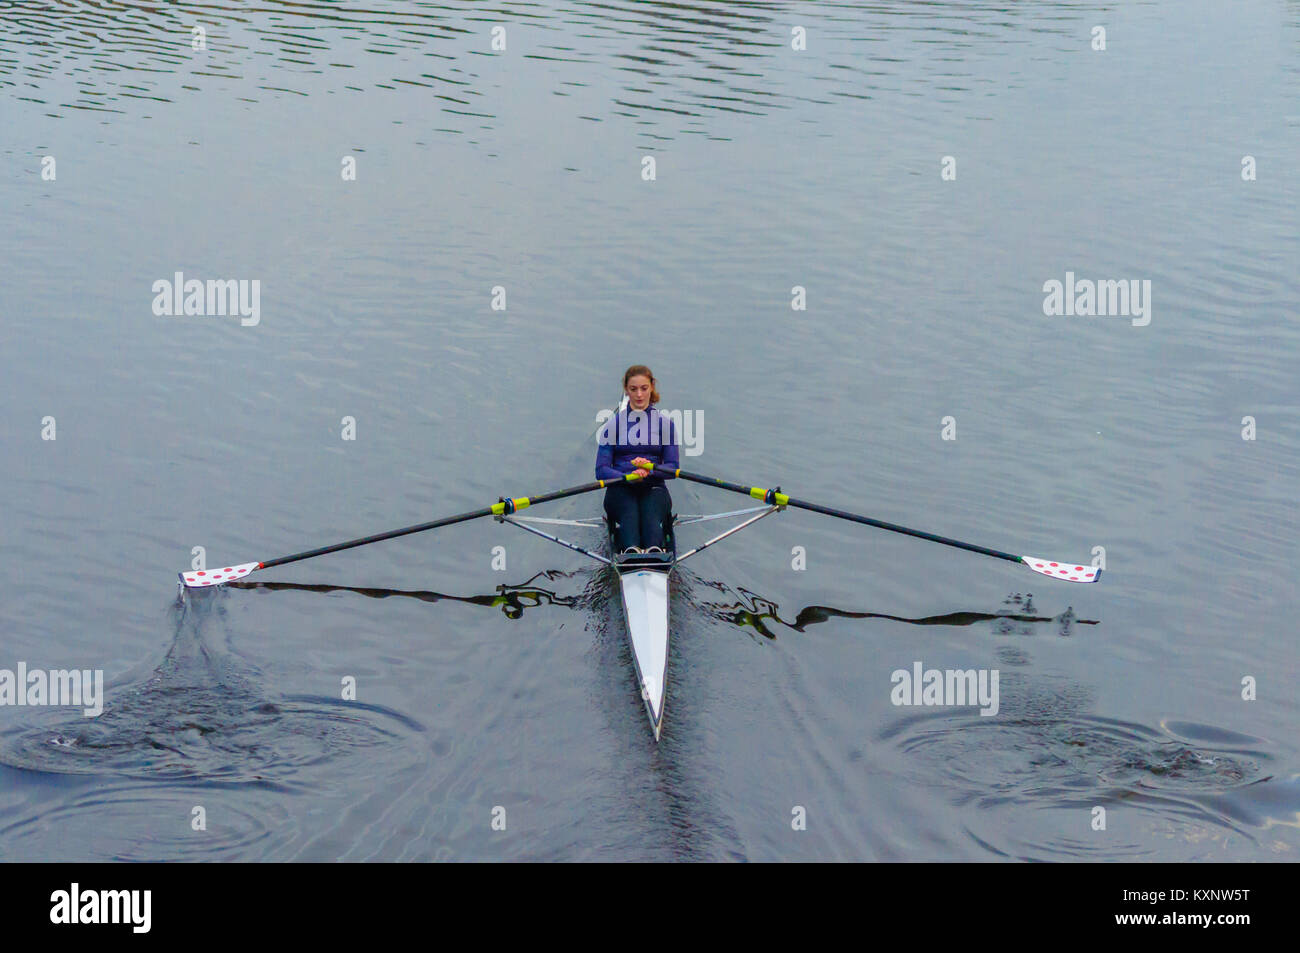 Single Scull Rowing Boat Stock Photos & Single Scull Rowing